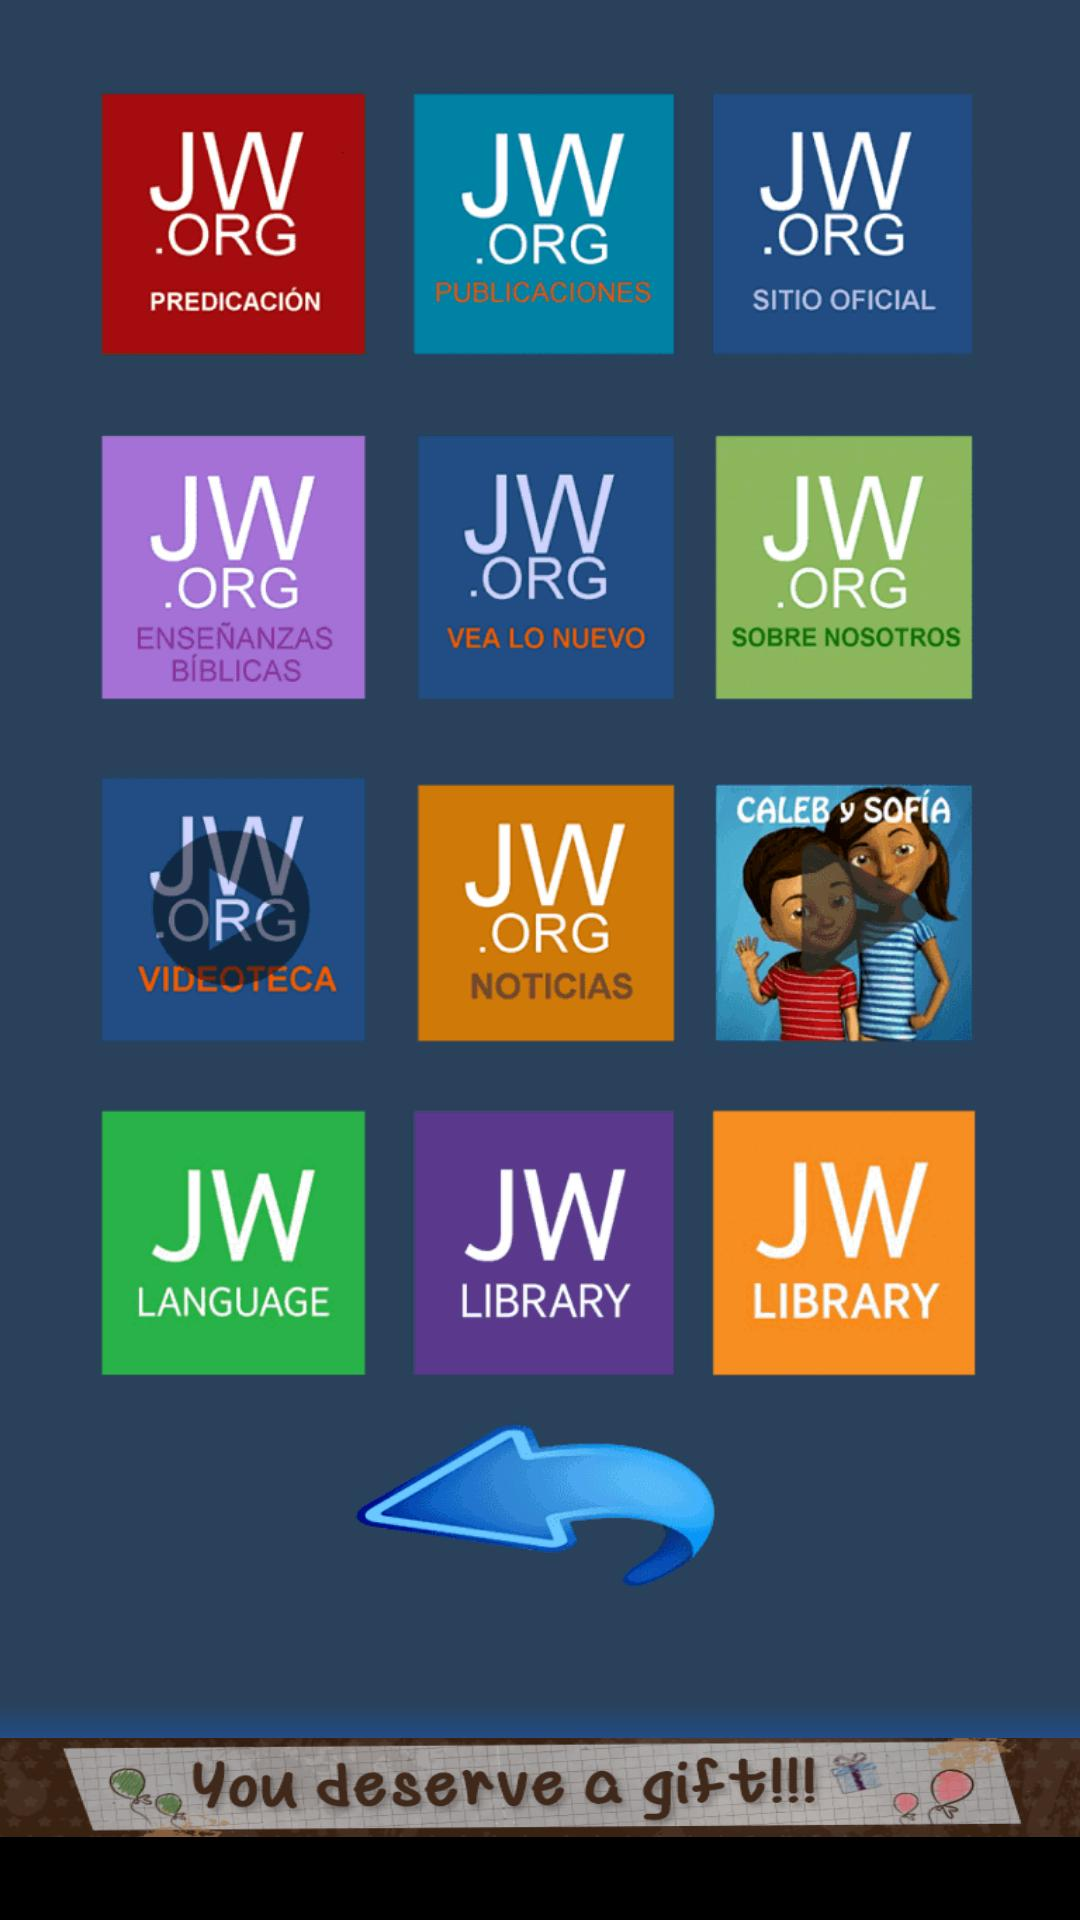 JW Quick Tools & Languages for Android - APK Download